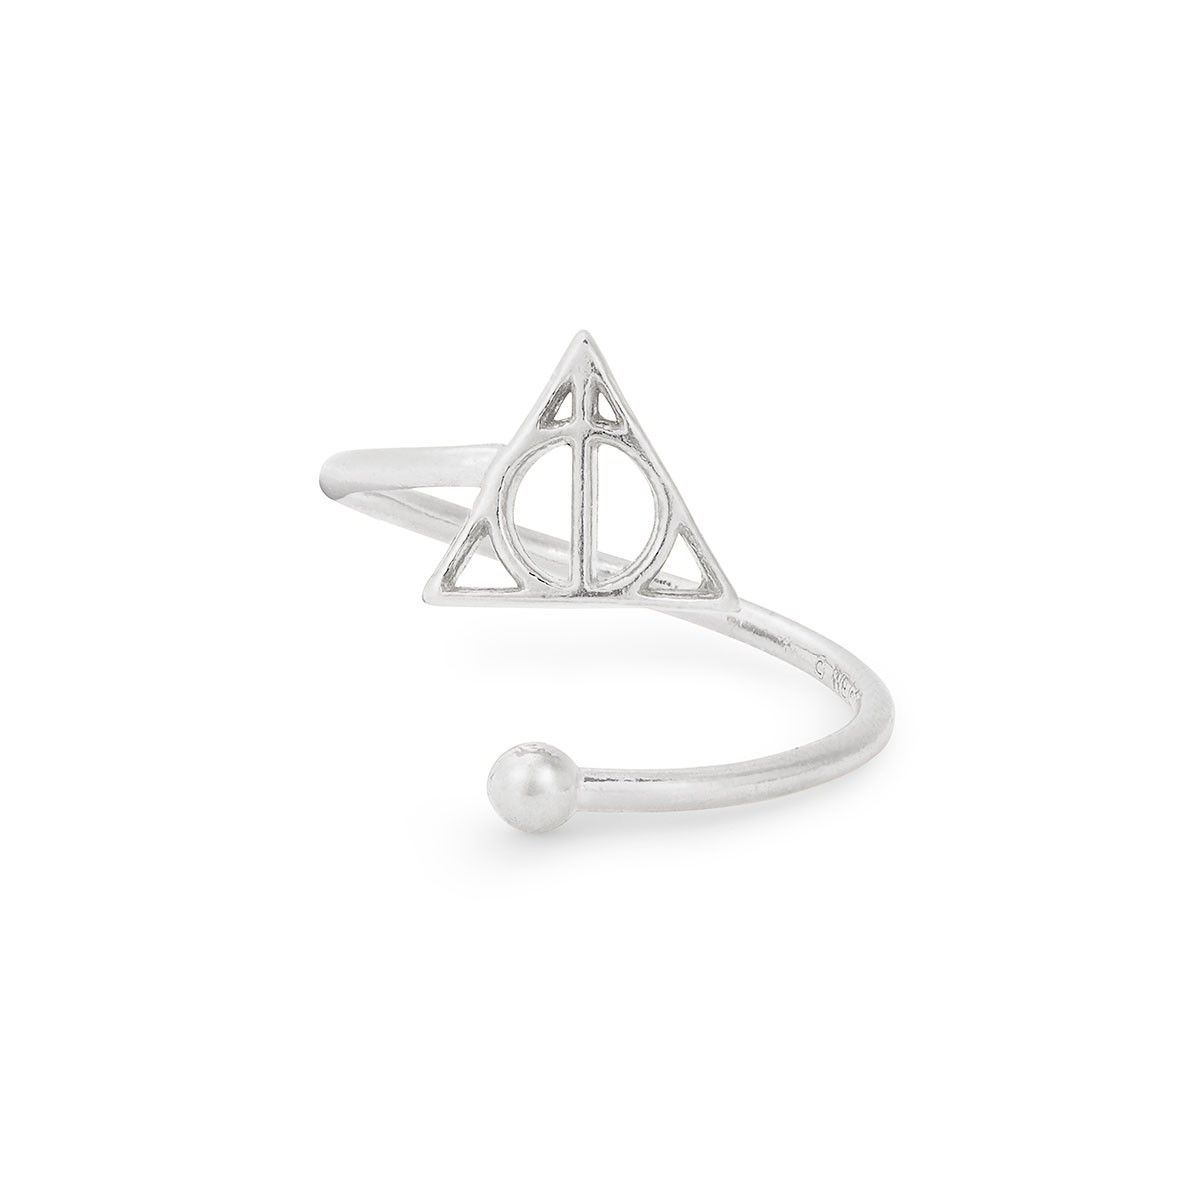 Harry potter deathly hallows ring wrap ring wraps deathly wear the deathly hallows ring wrap featuring the deathly hallows symbol to assist you as you biocorpaavc Images